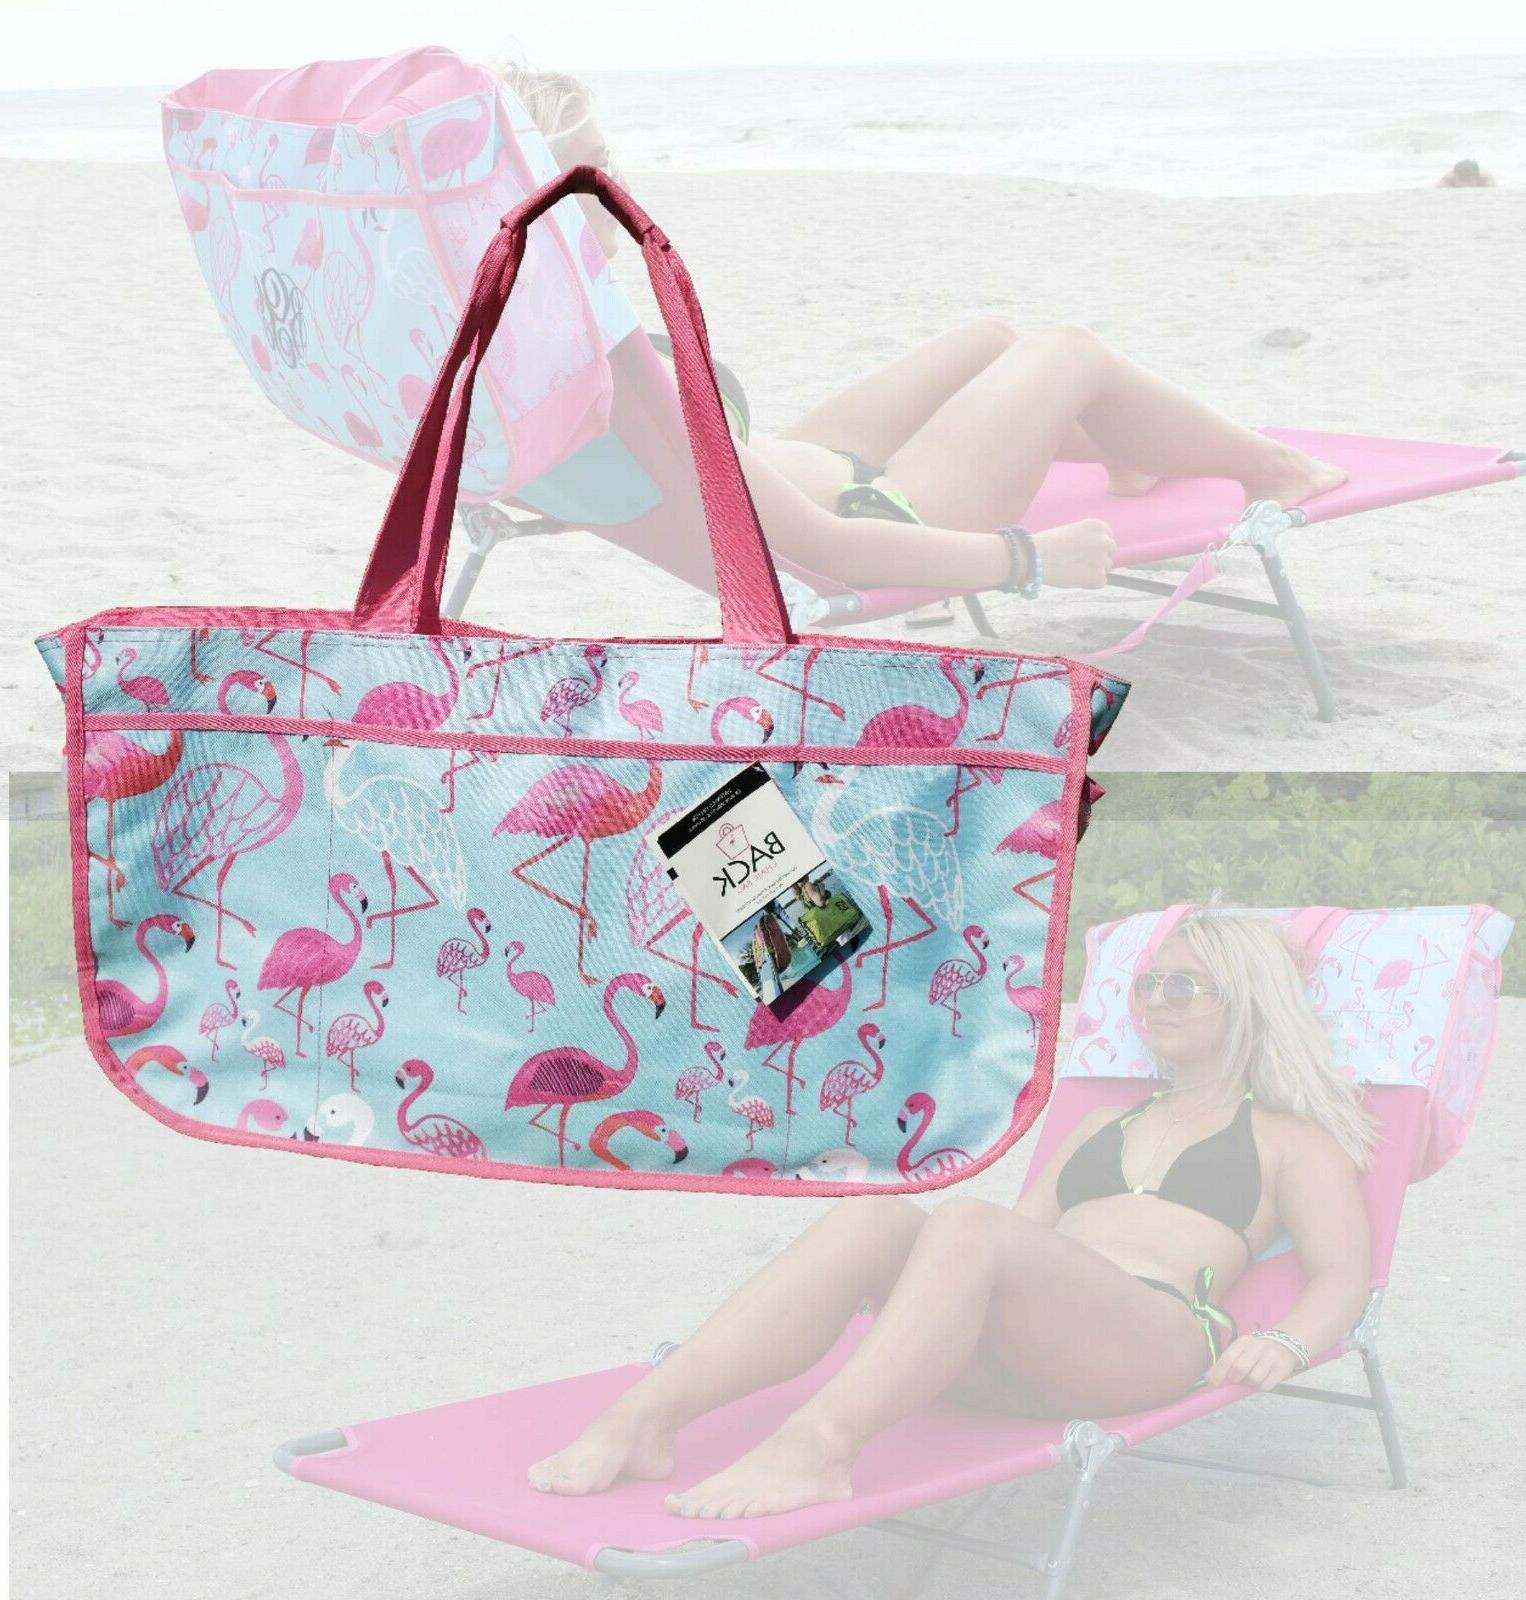 worlds 1st tote beach bag that easily